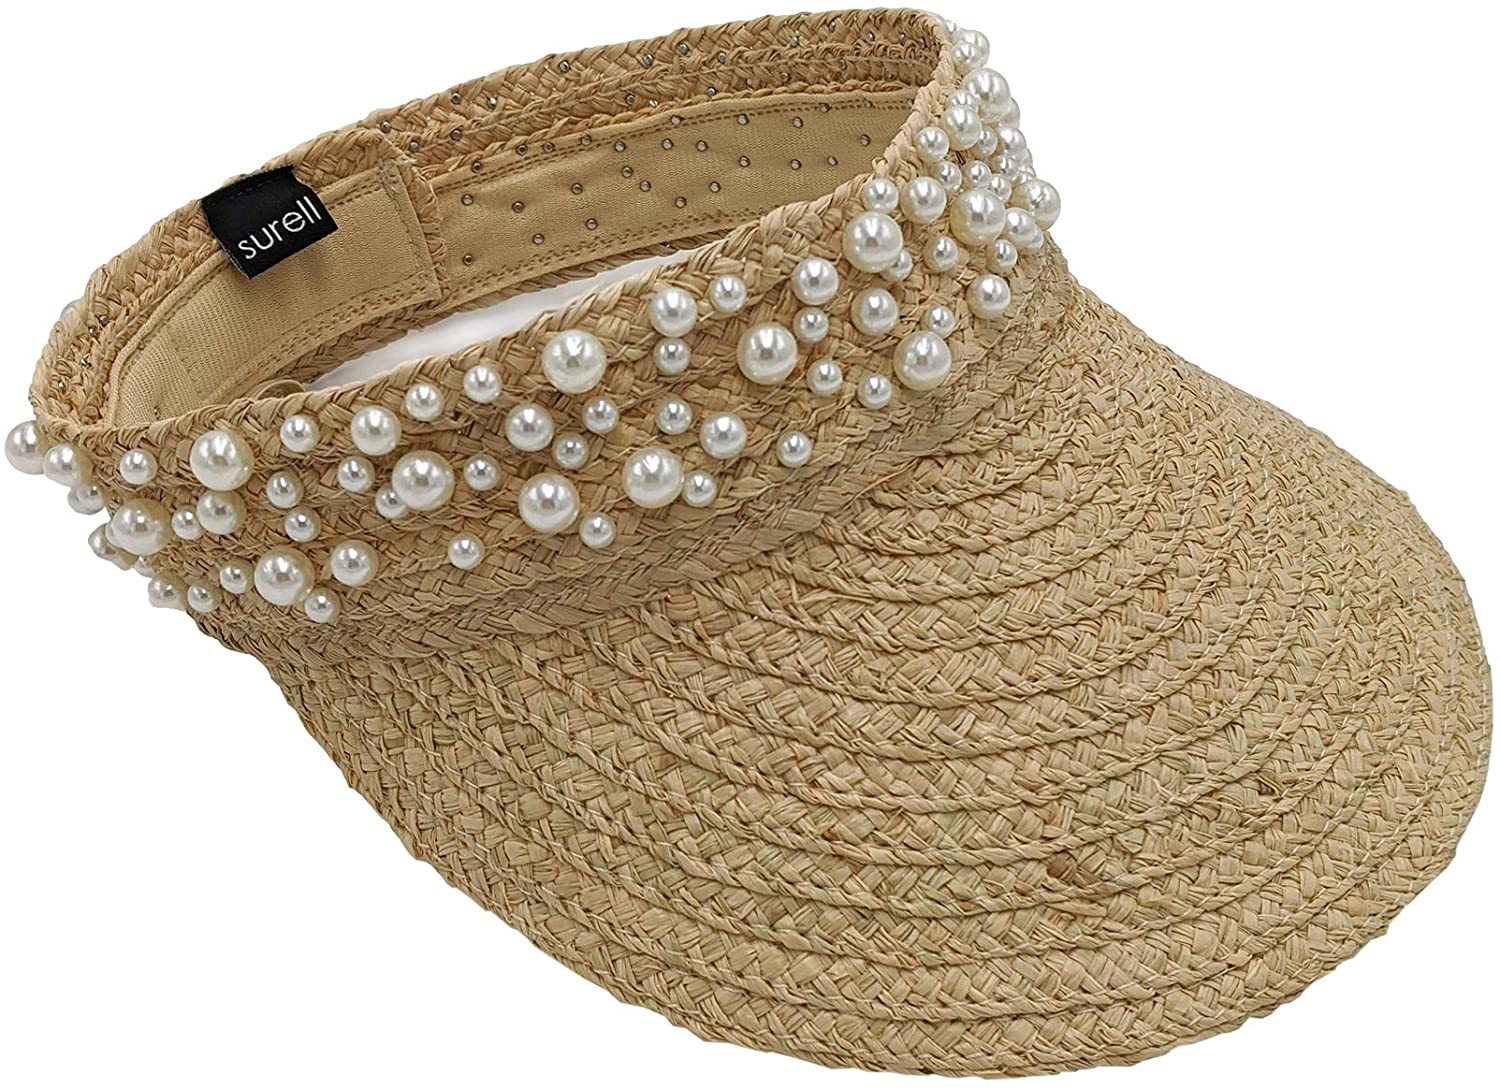 surell - Summer Sunhat Beach Visor Cap with Pearls - Hand Woven Soft Raffia Straw Sun Hat - Sun Protection Cap - Sunny Beach and Lake Gift Present (Tan)